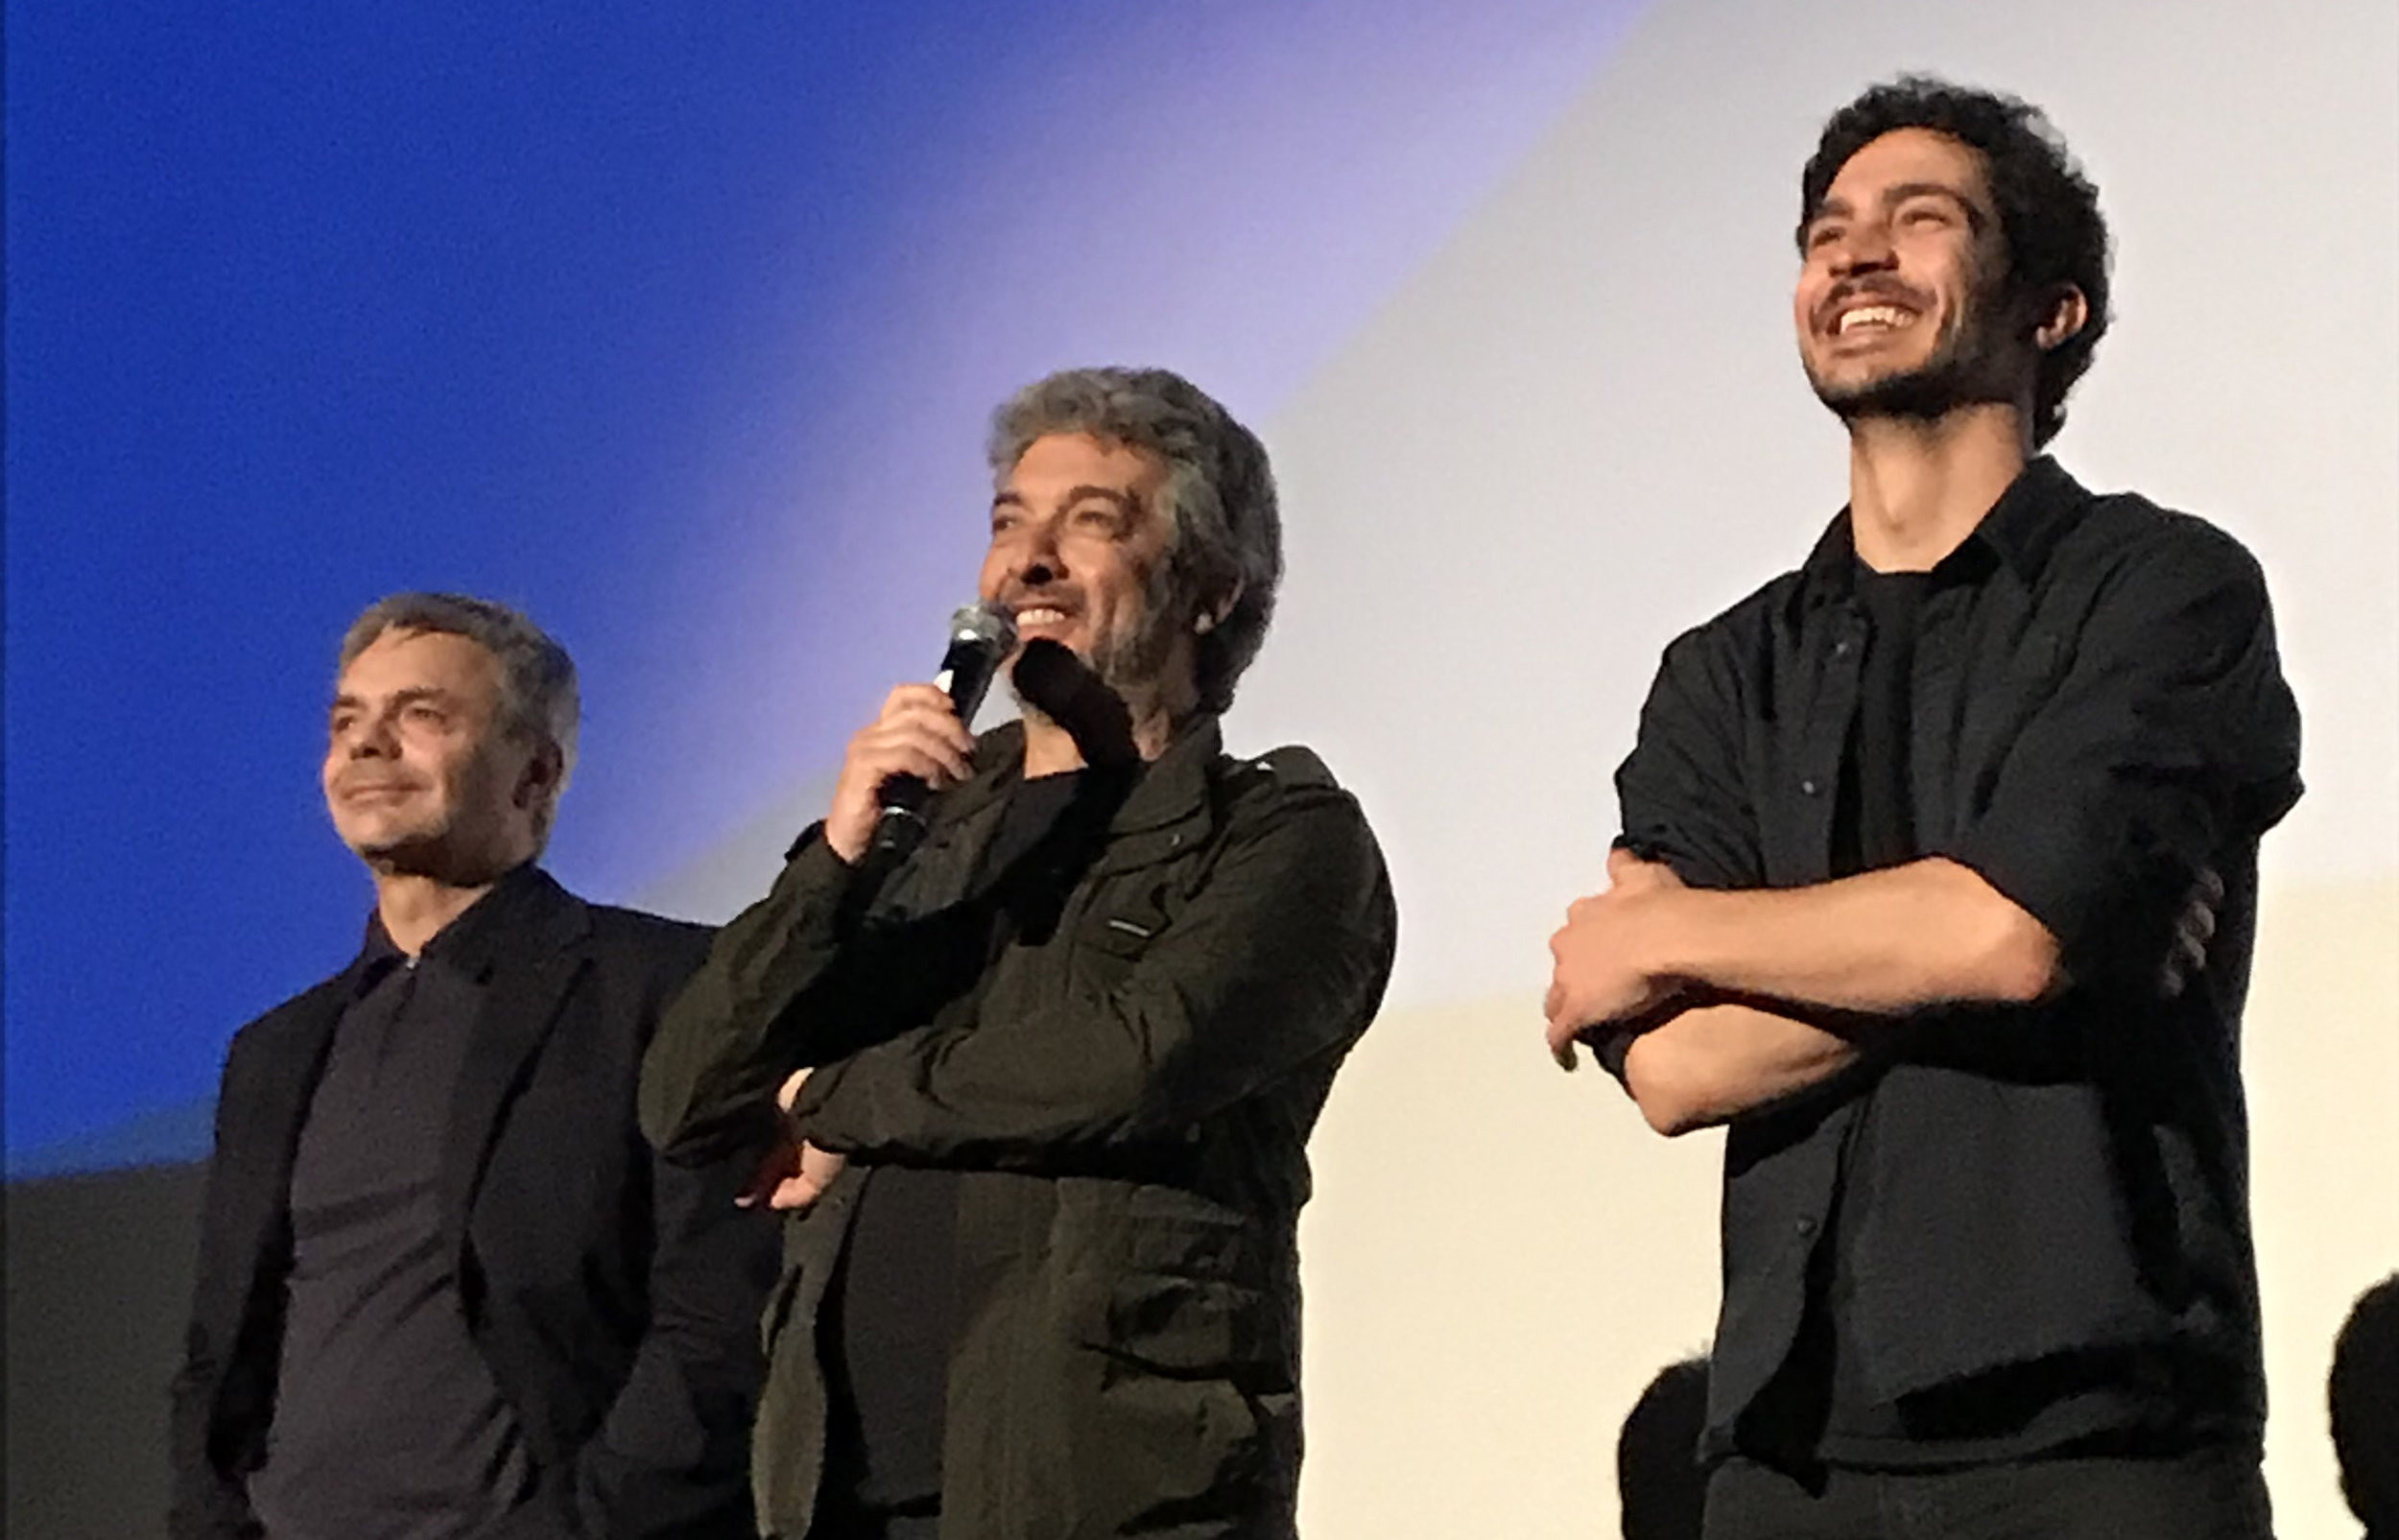 Director Sebastián Borensztein (left) with actors Ricardo Darín (center) and Chino Darín at the international premiere of  Heroic Losers  at the Toronto International Film Festival.